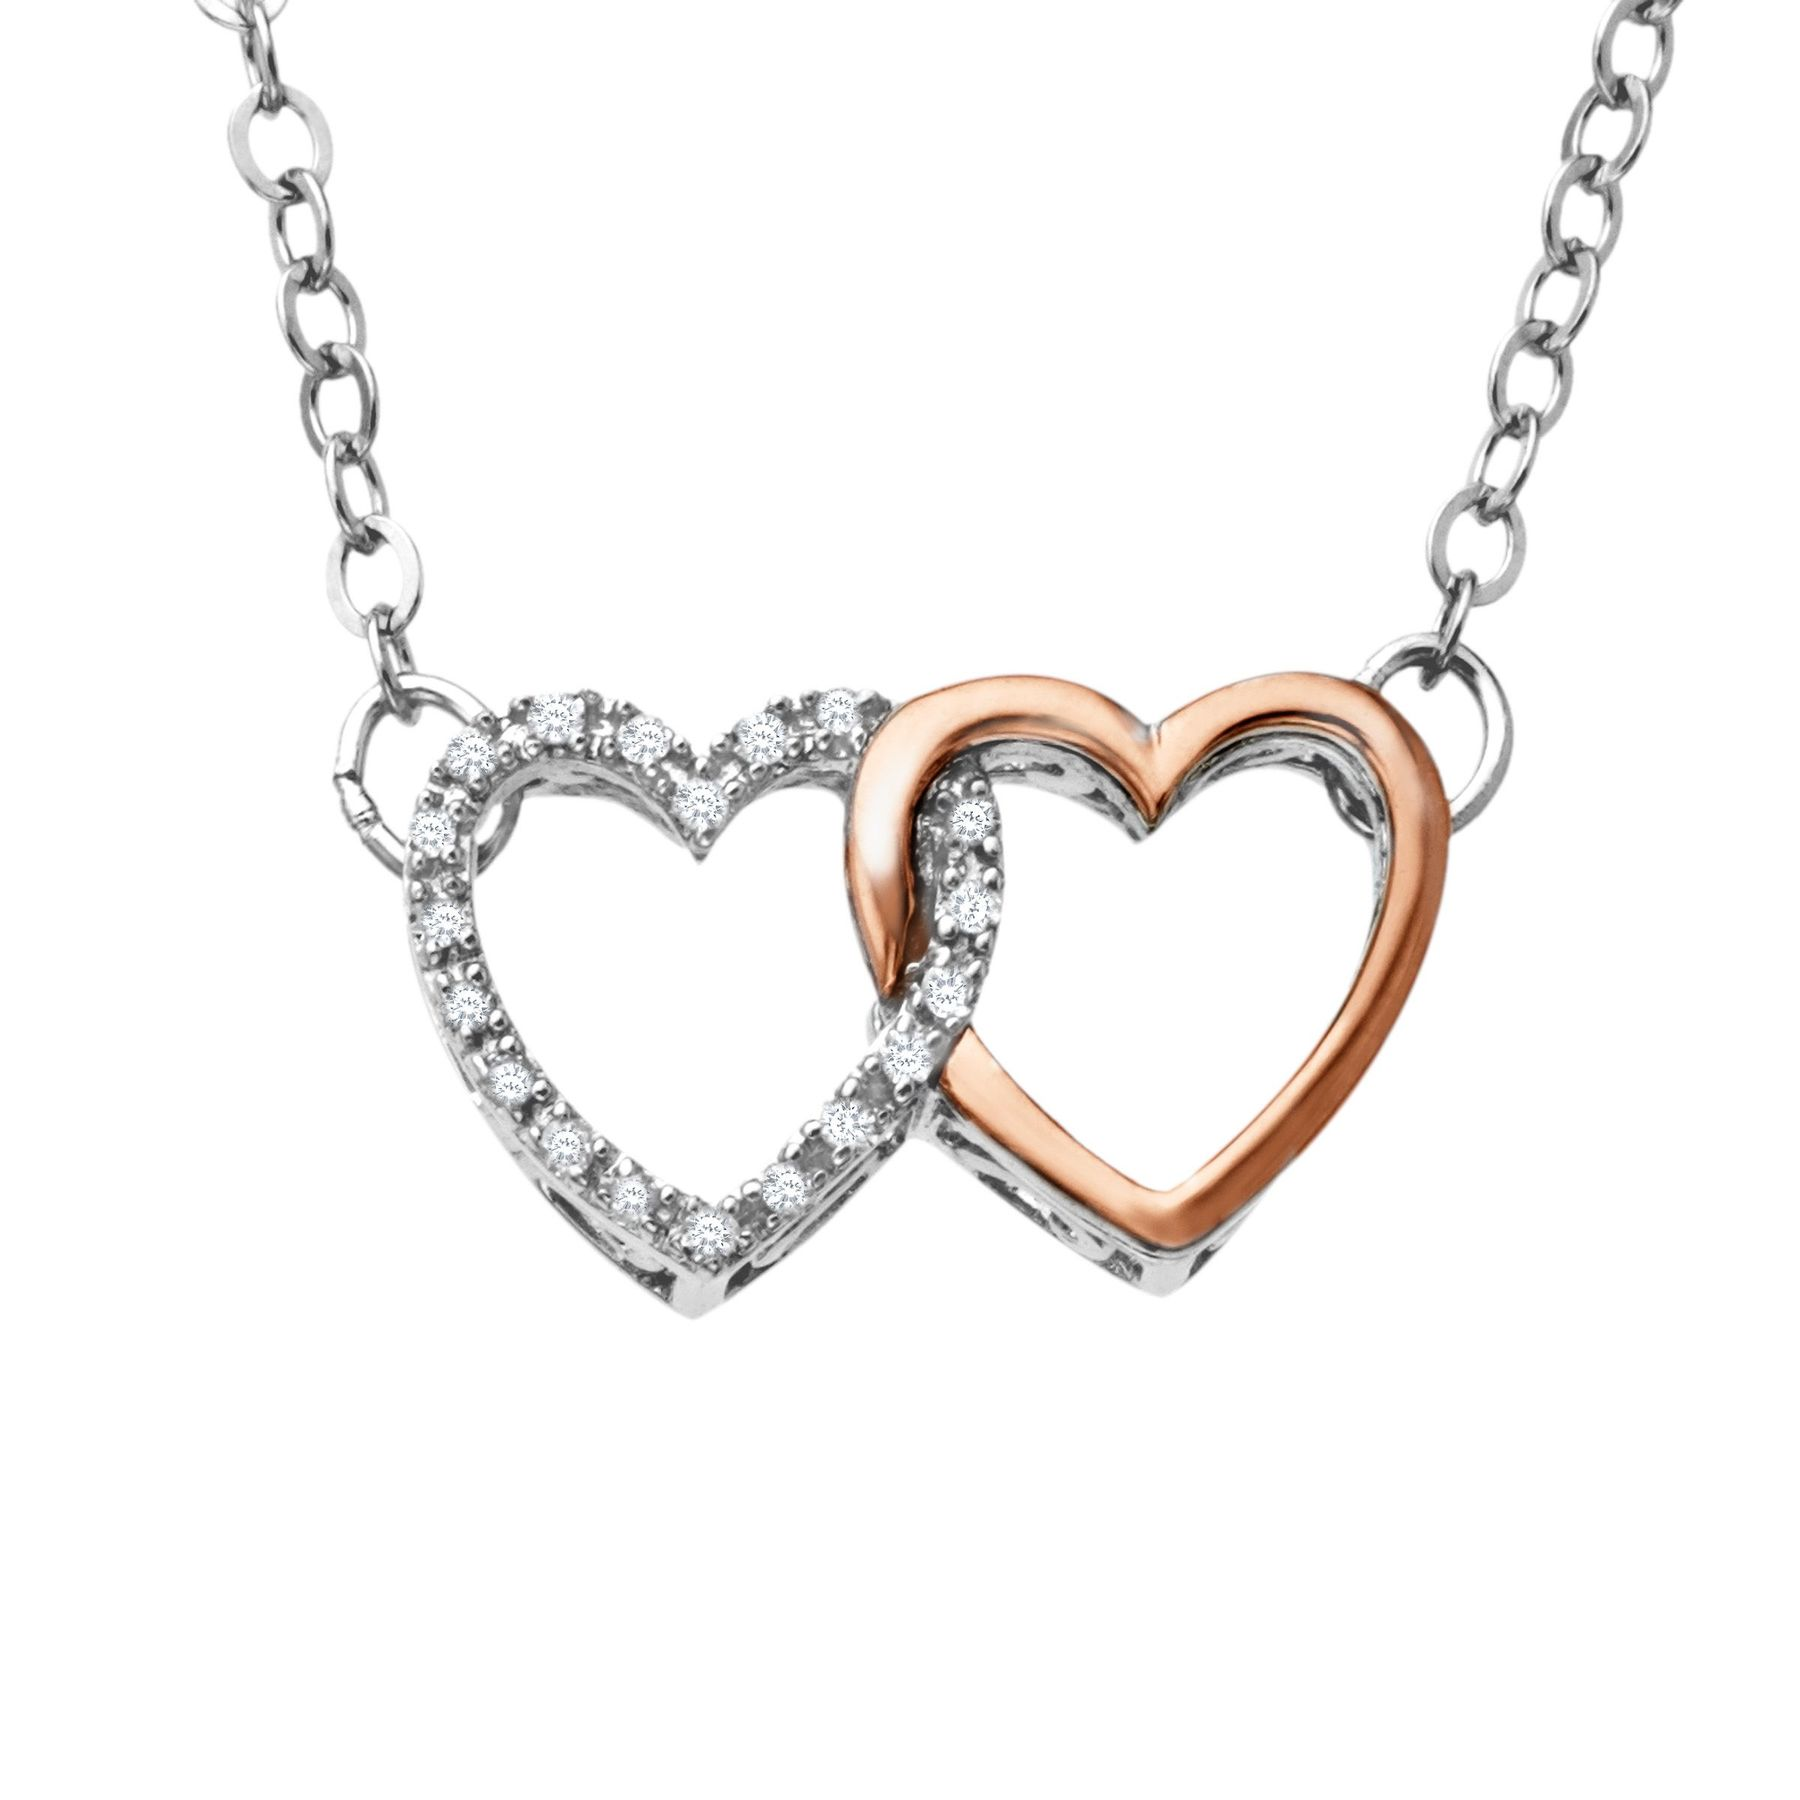 Finecraft Linking Heart Necklace with Diamonds Silver and Gold